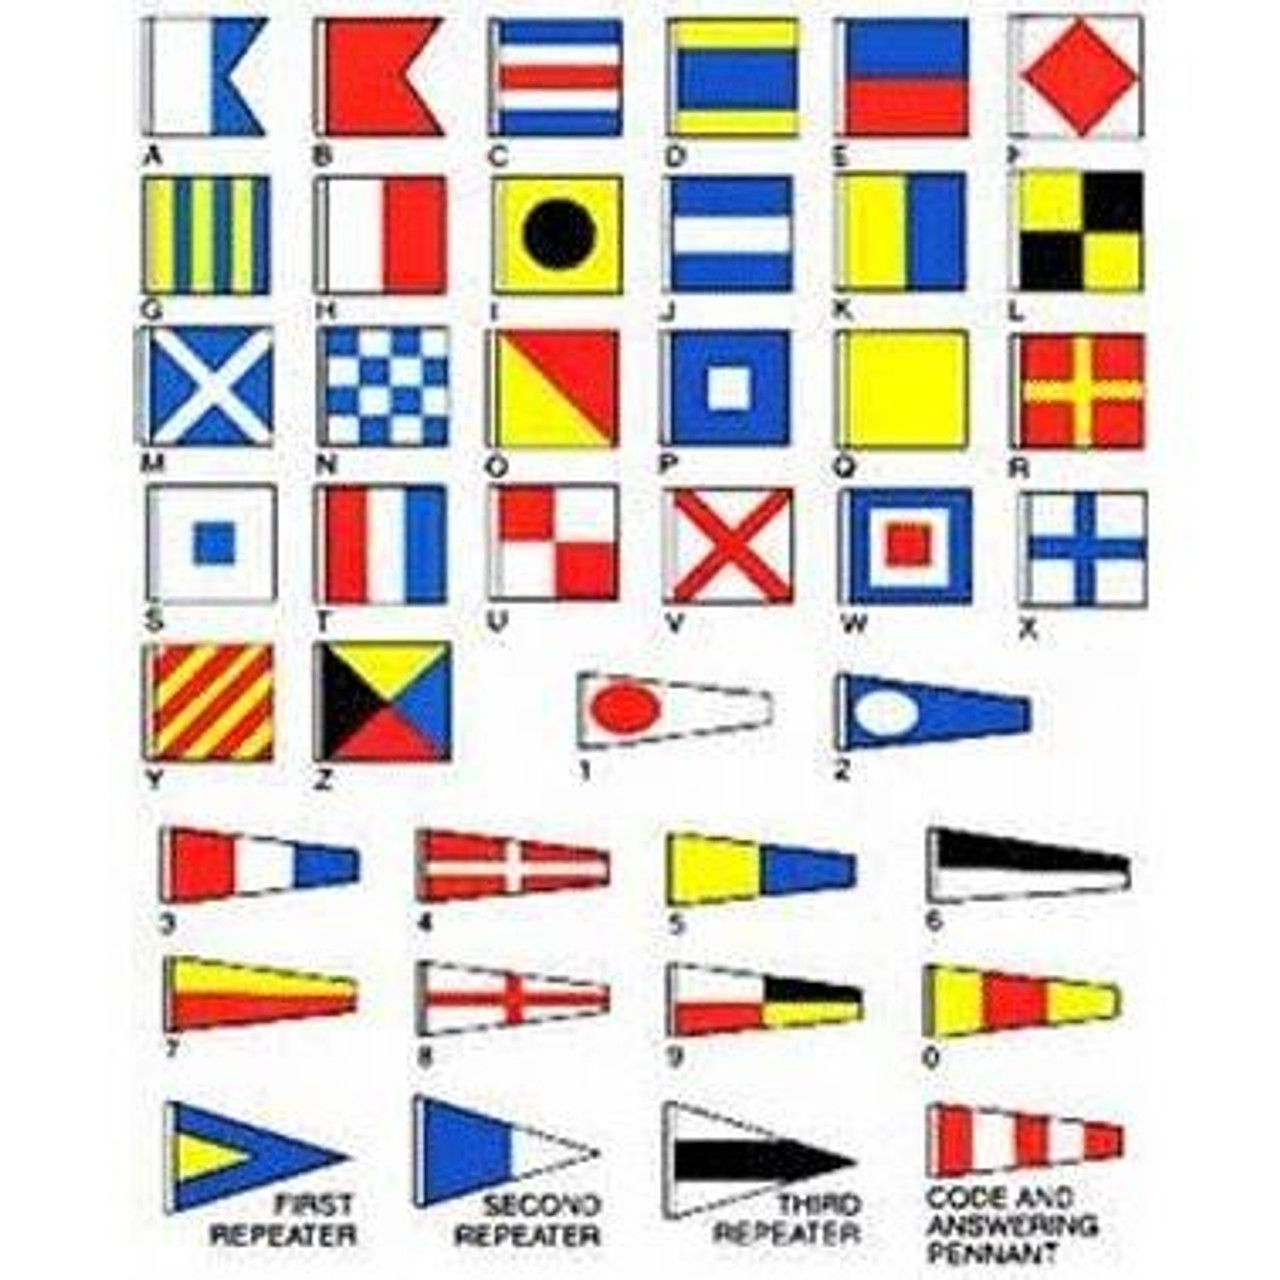 International Code Signal Set with 40 different code signal flags including First Repeater, Second Repeater, Third Repeater, and Code and Answering Pennant